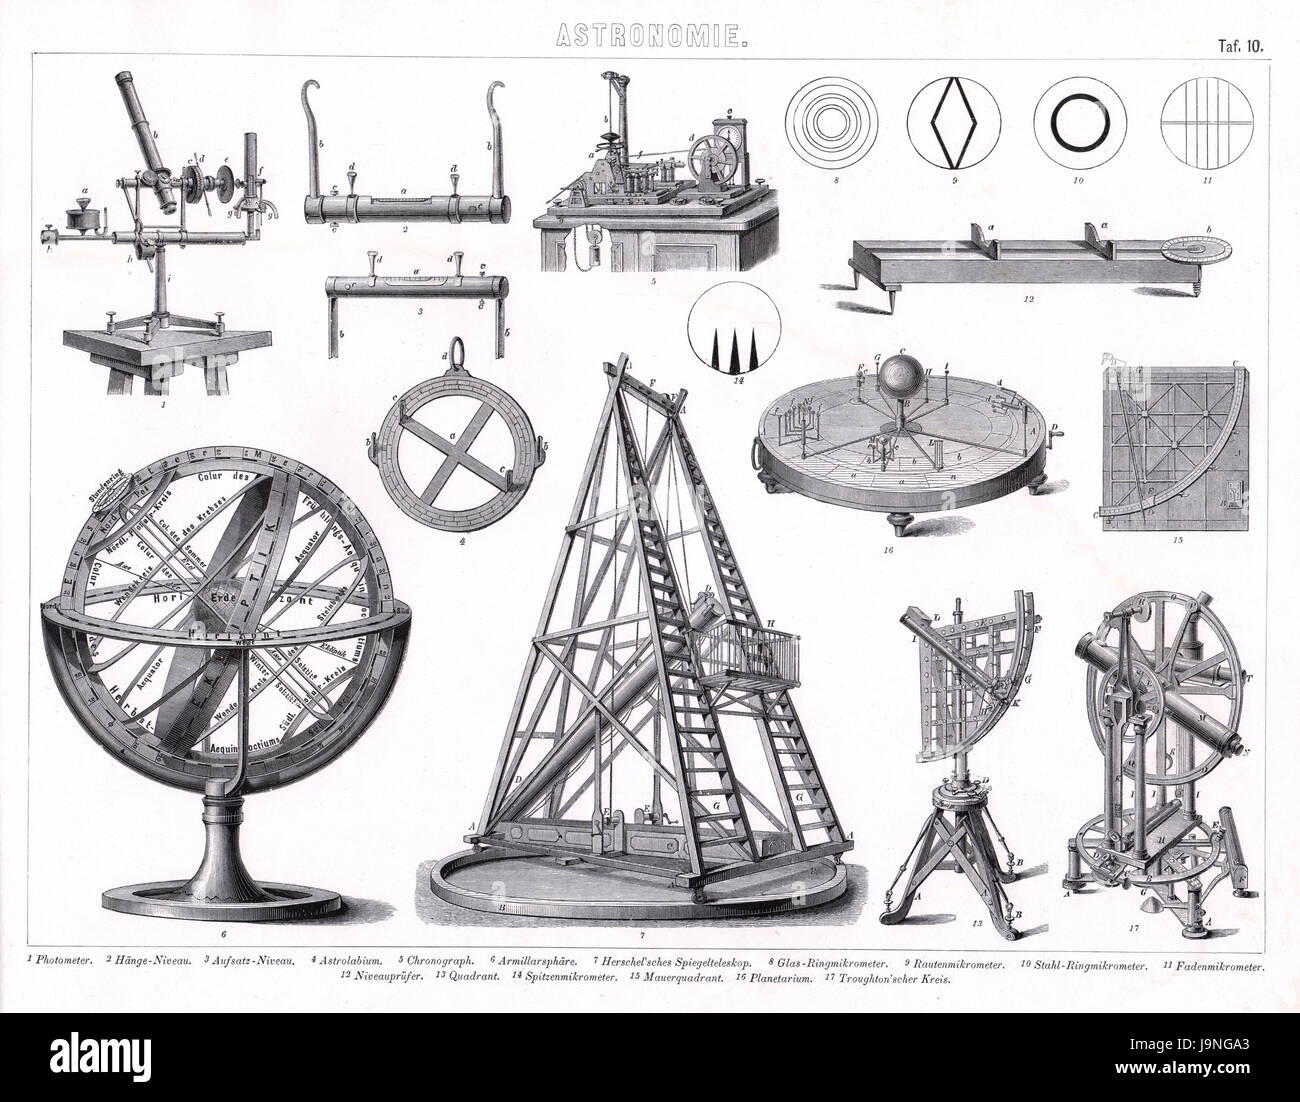 1874 Bilder Print of instruments including telescopes, solar system models, sextants and other that pertain to the - Stock Image